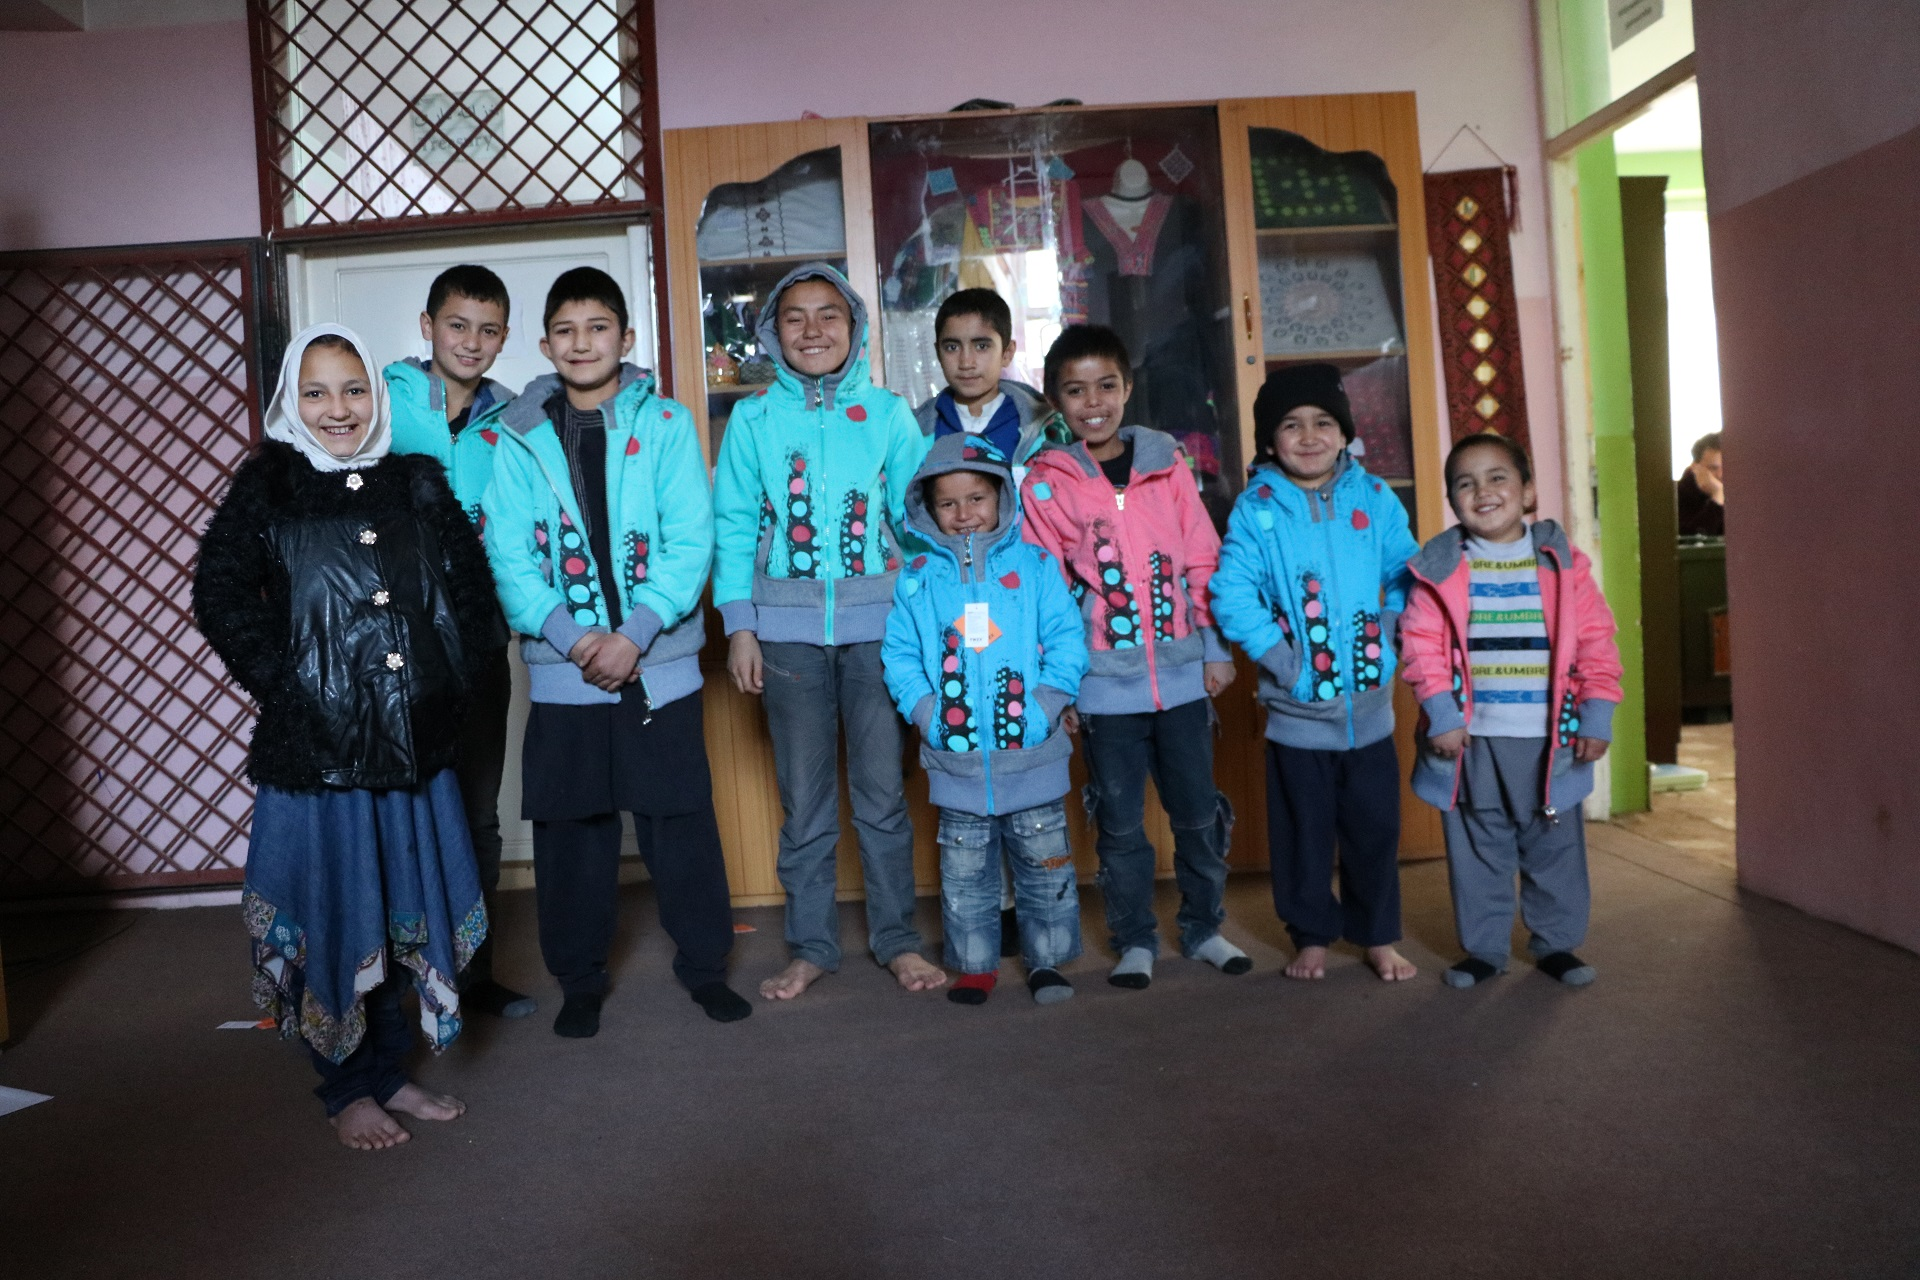 Kida at Kabul Hope House in Warm clothes